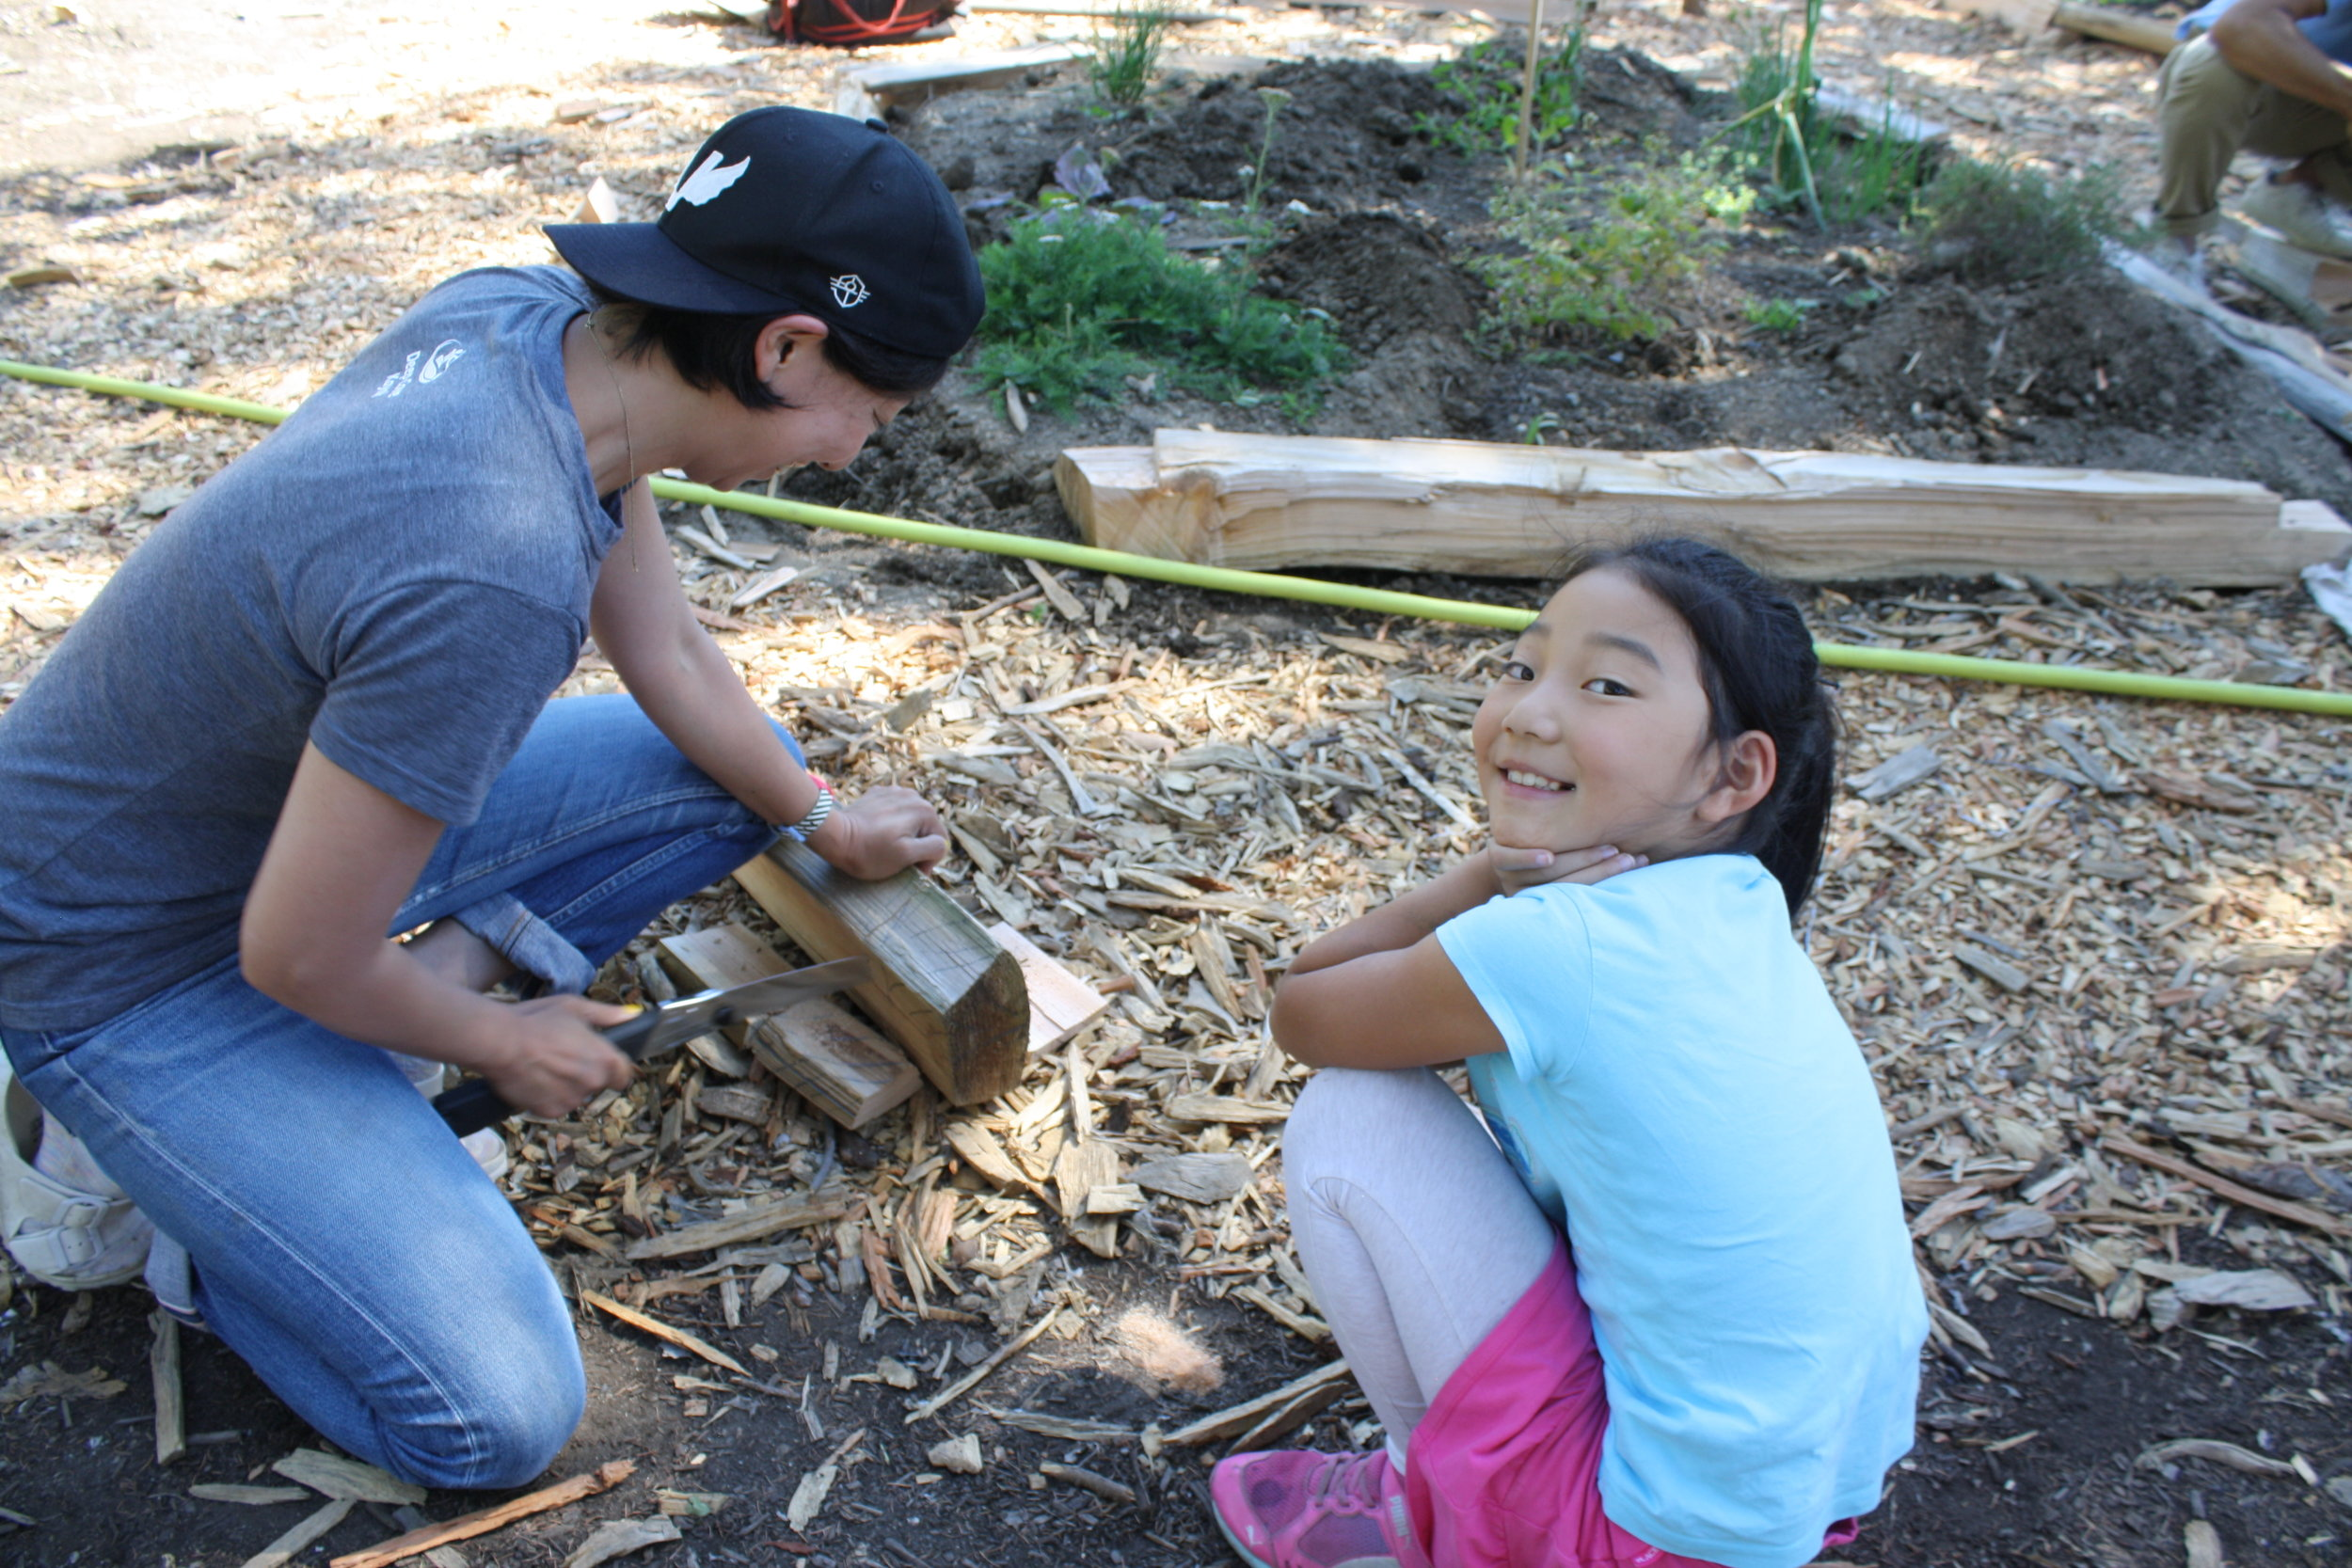 Hard at work creating herb garden borders out of reclaimed wood!